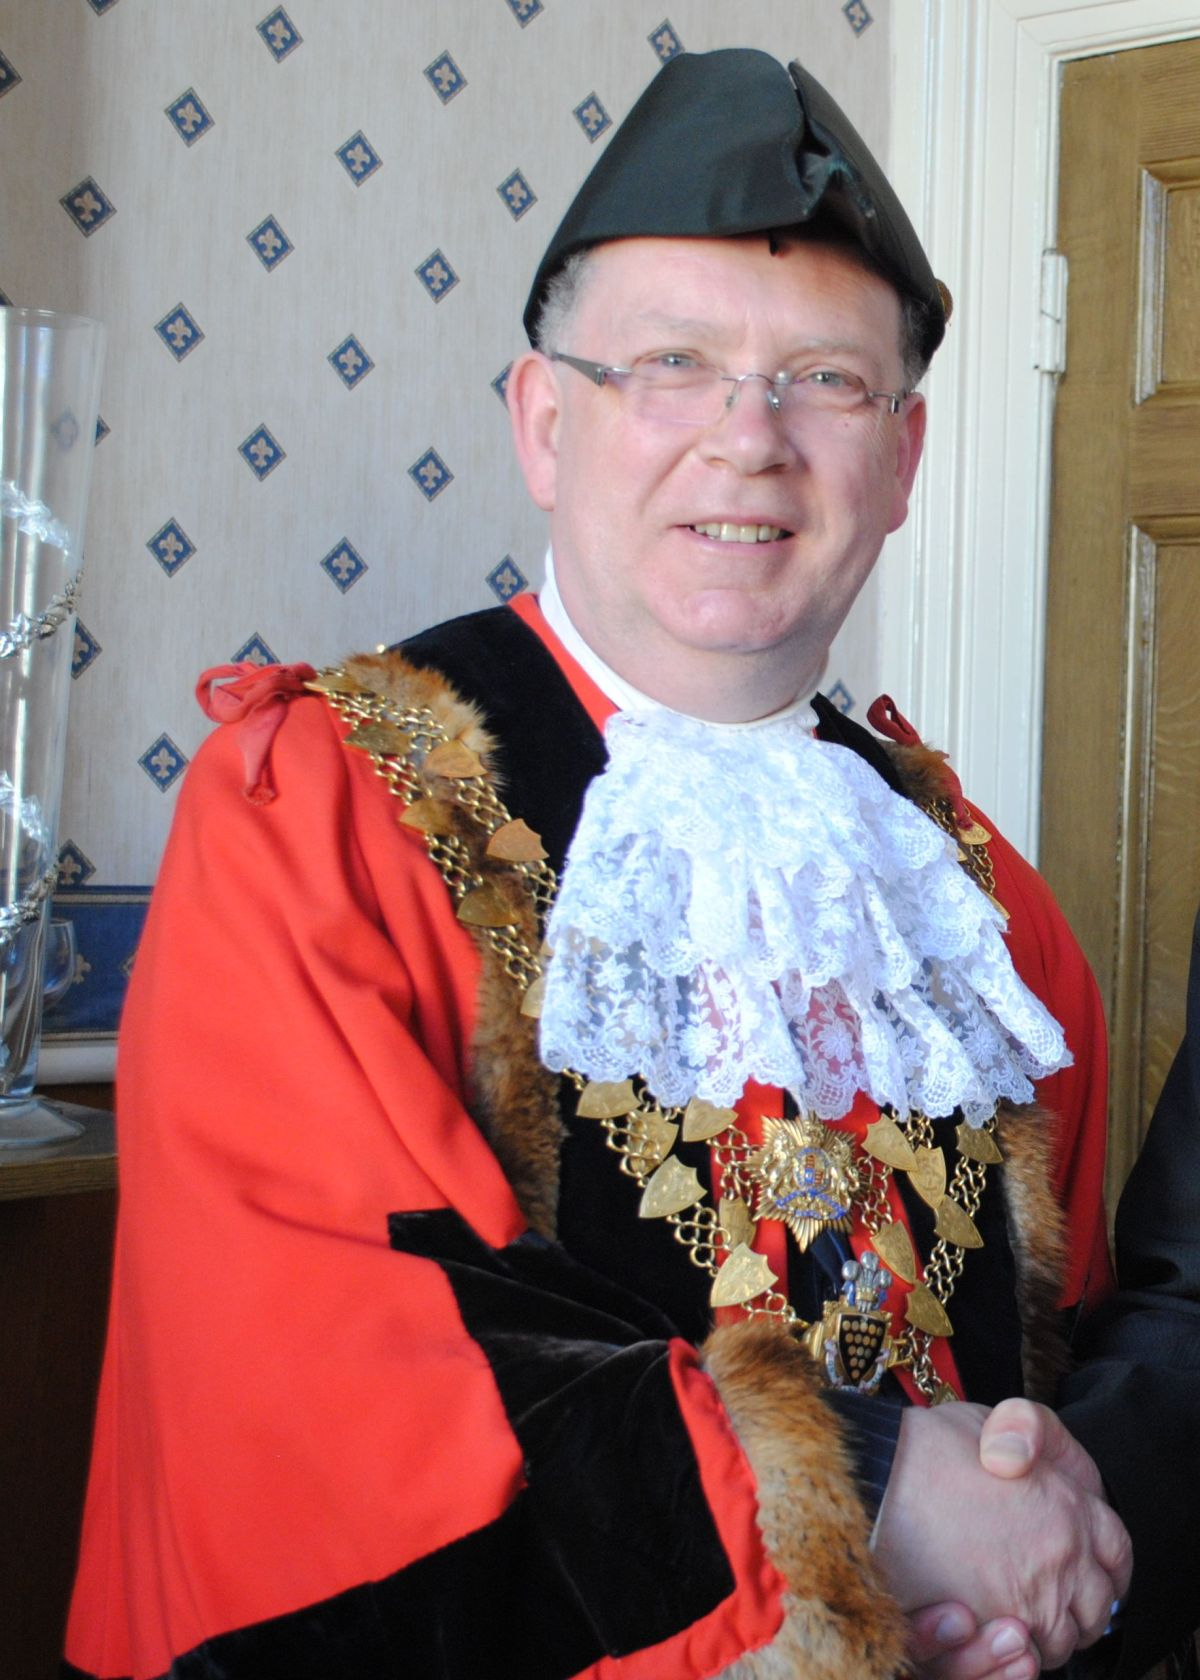 Helston's mayor plans dance as next charity fundraiser